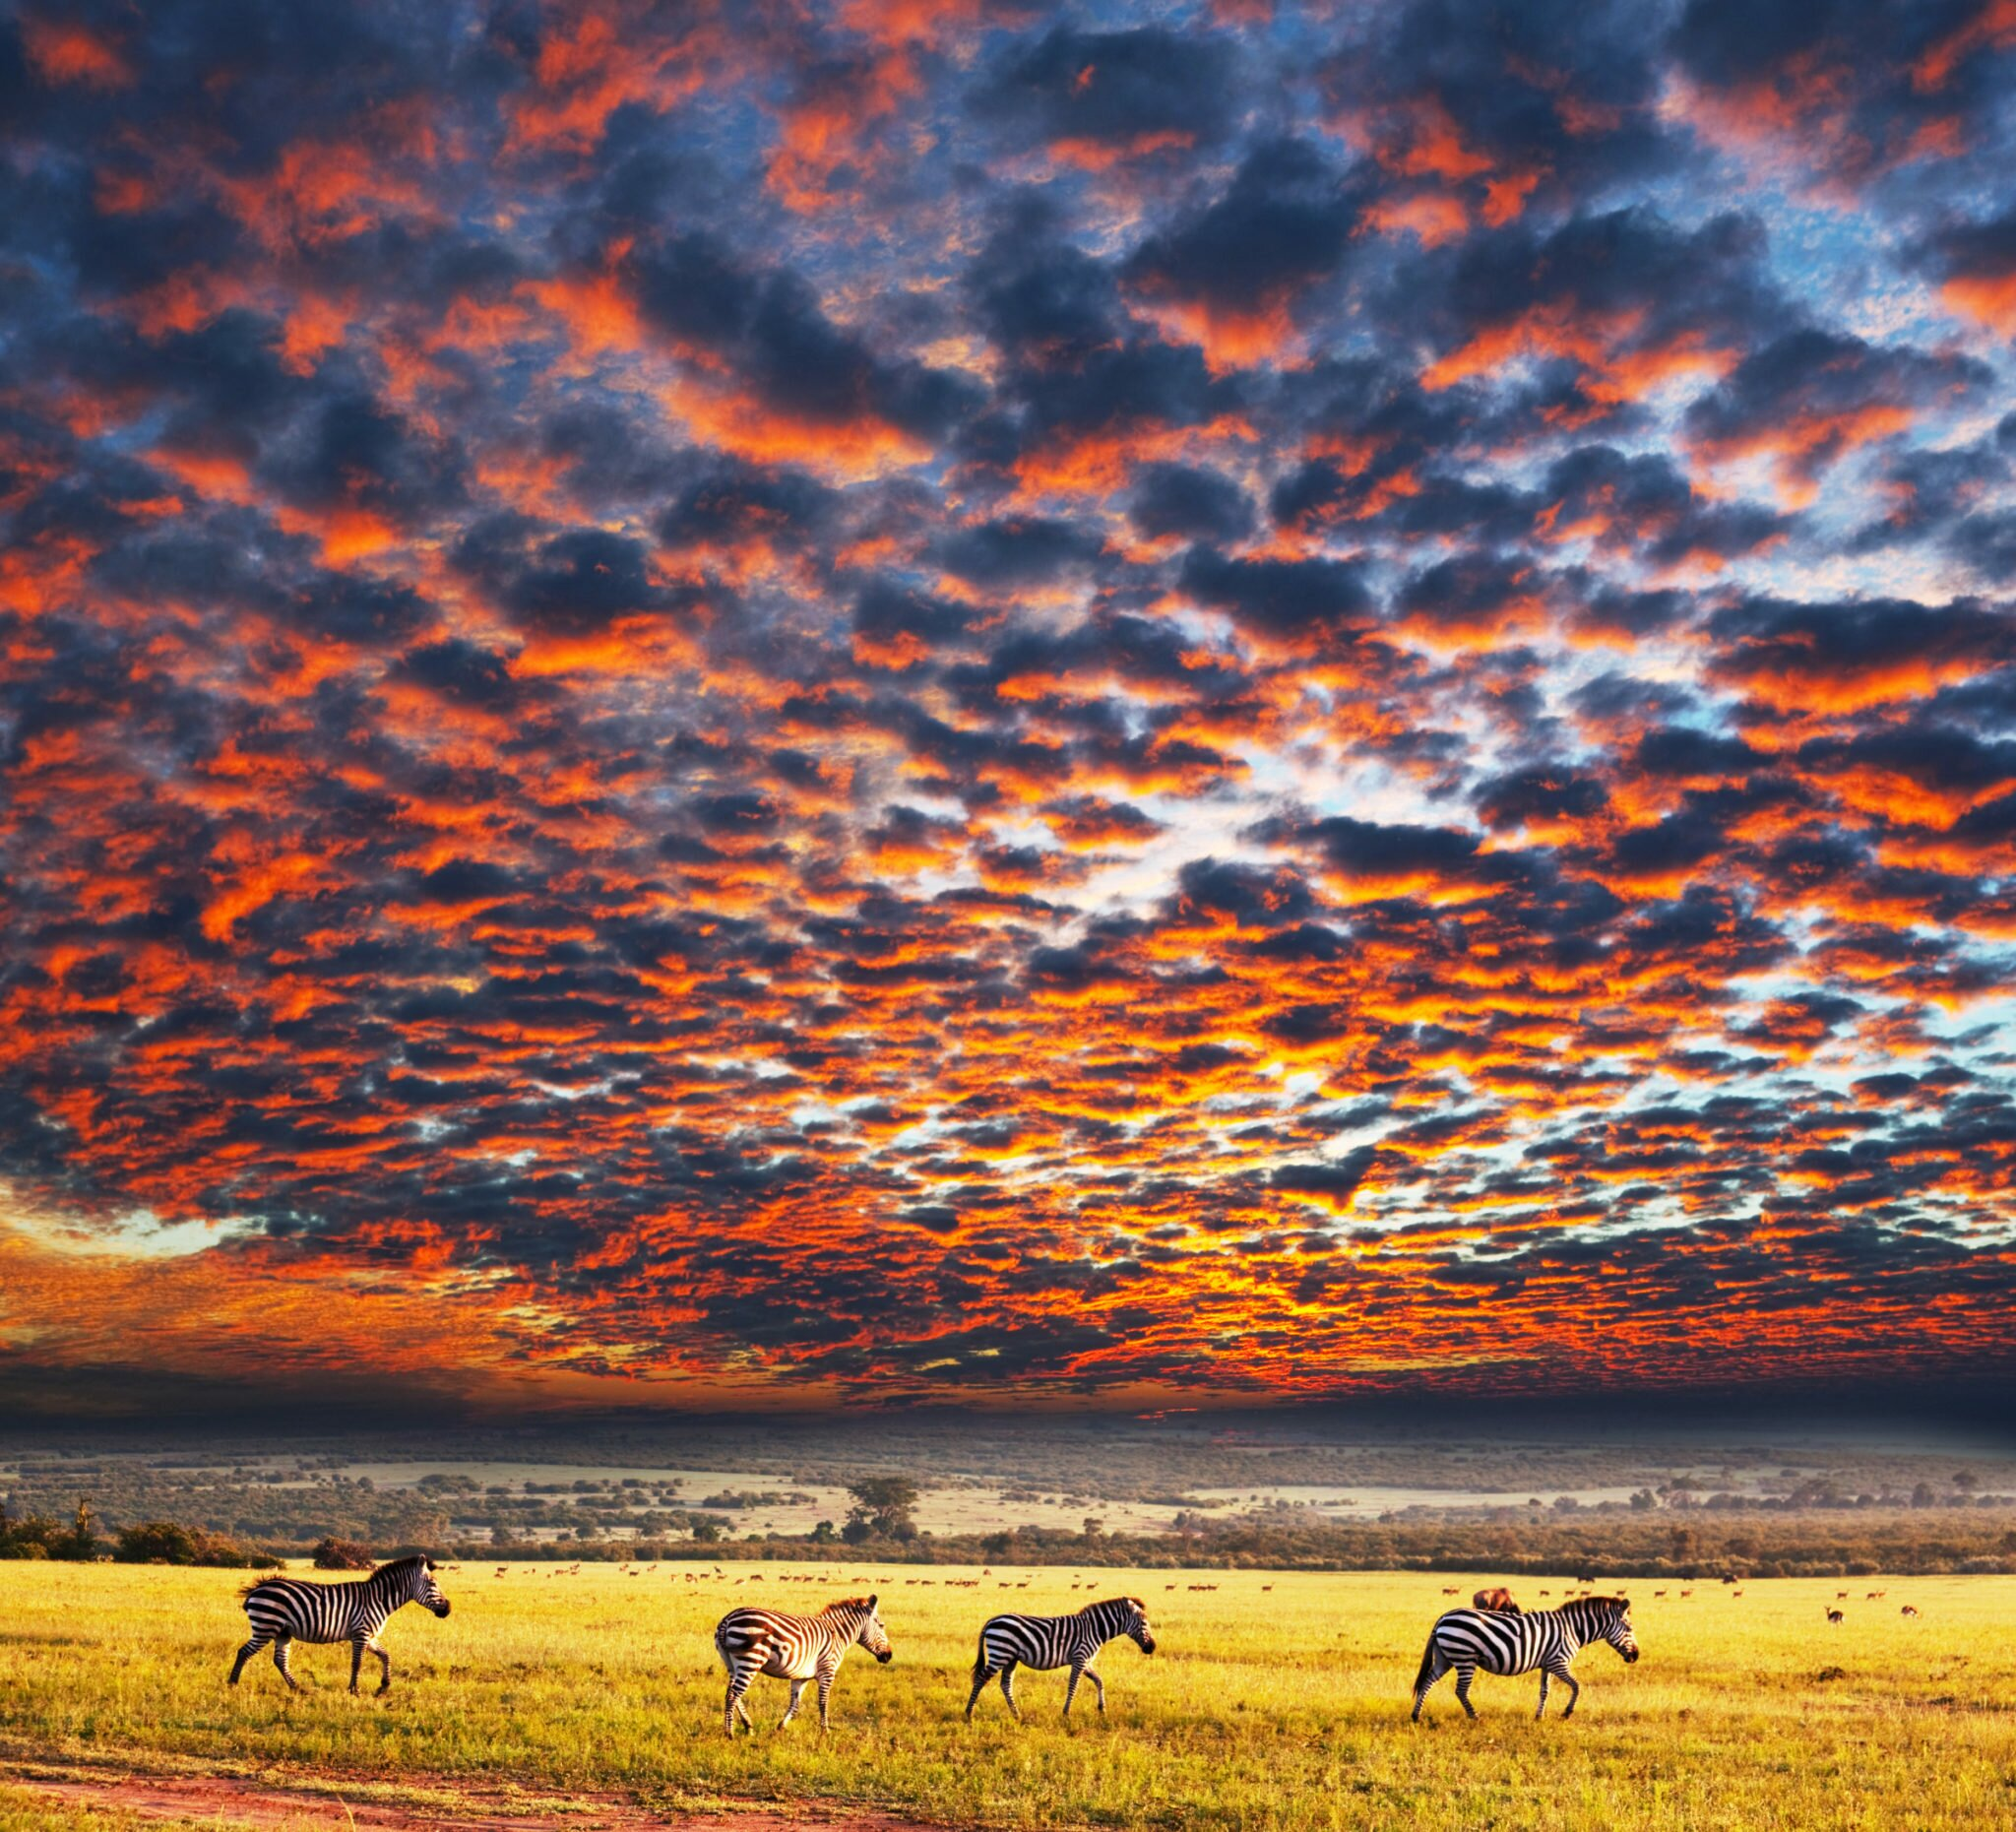 Zebras under colorful skies